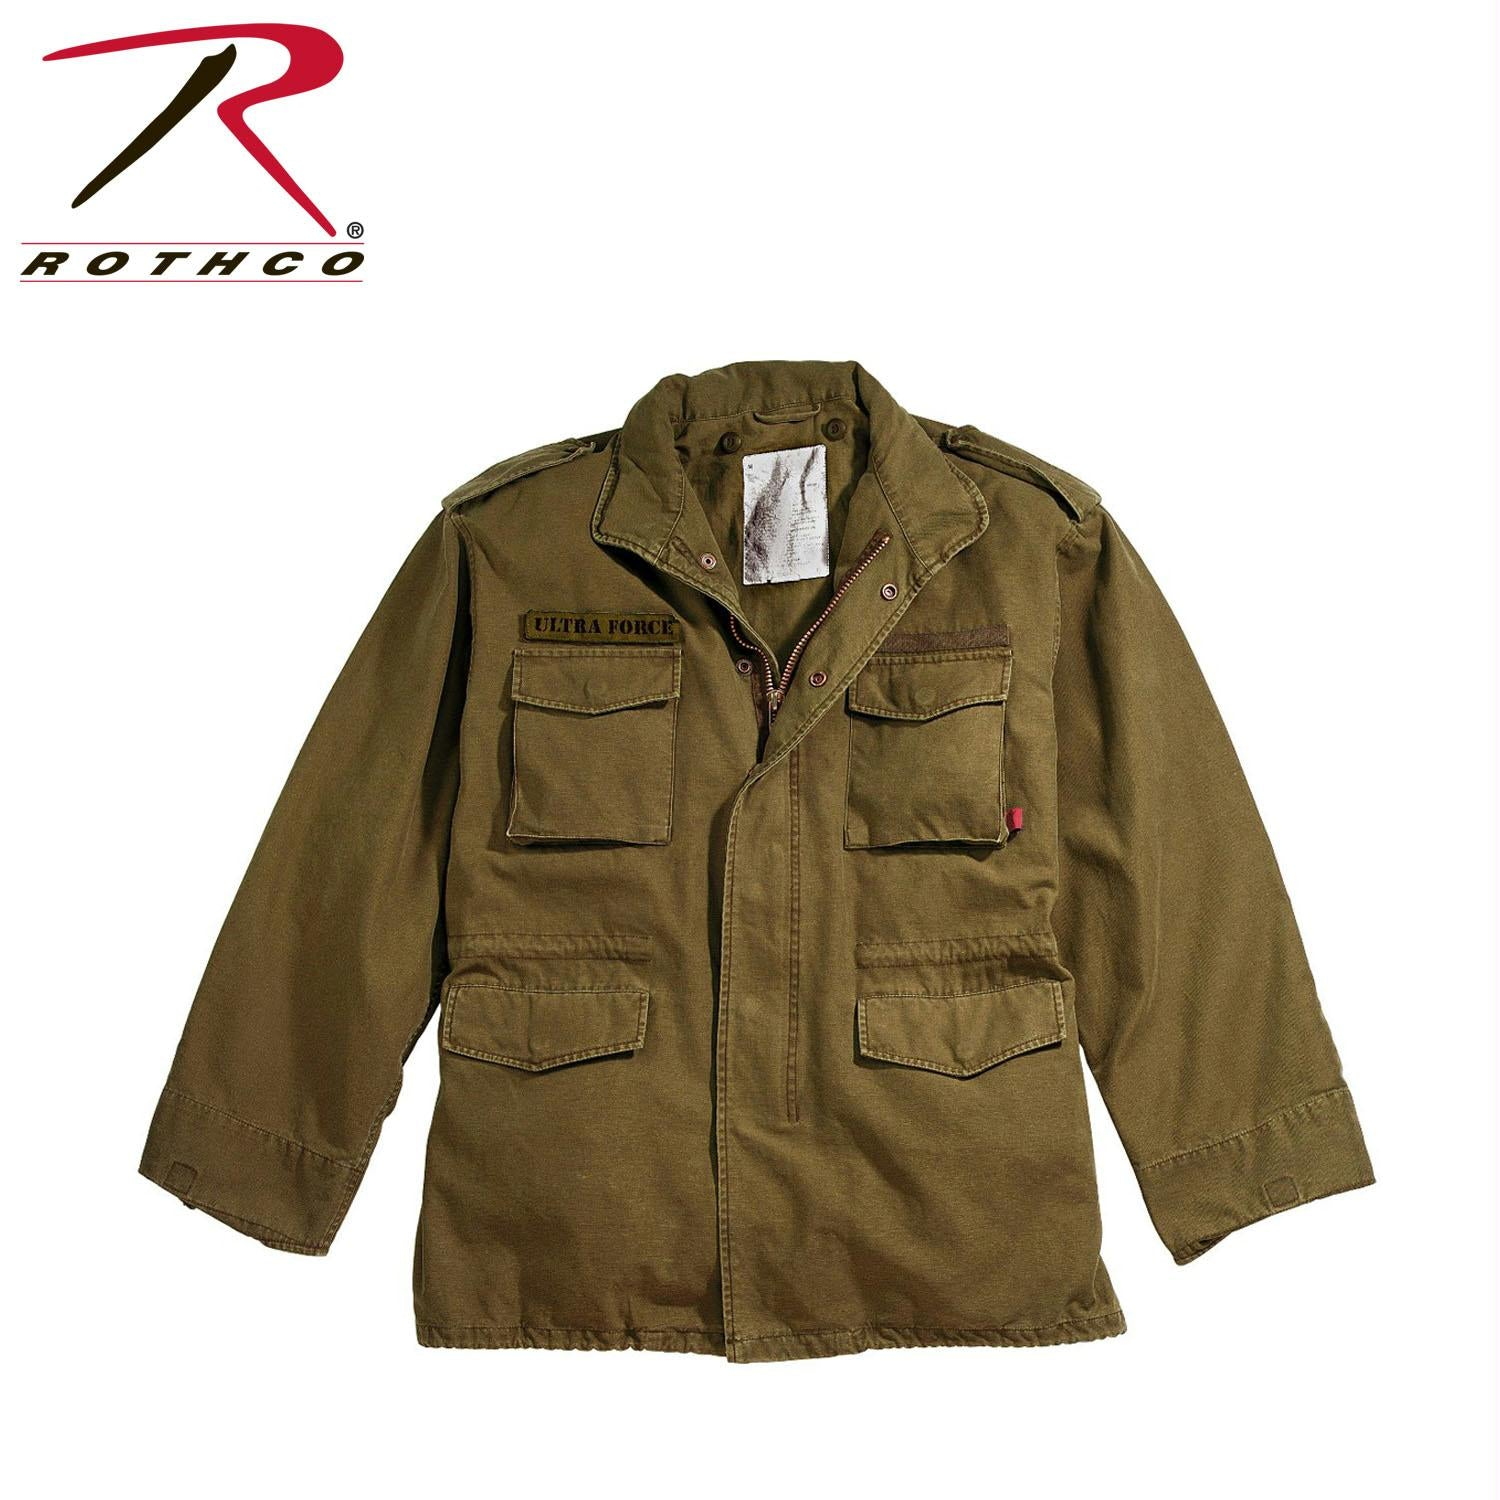 Rothco Vintage M-65 Field Jackets - Russet Brown / 2XL